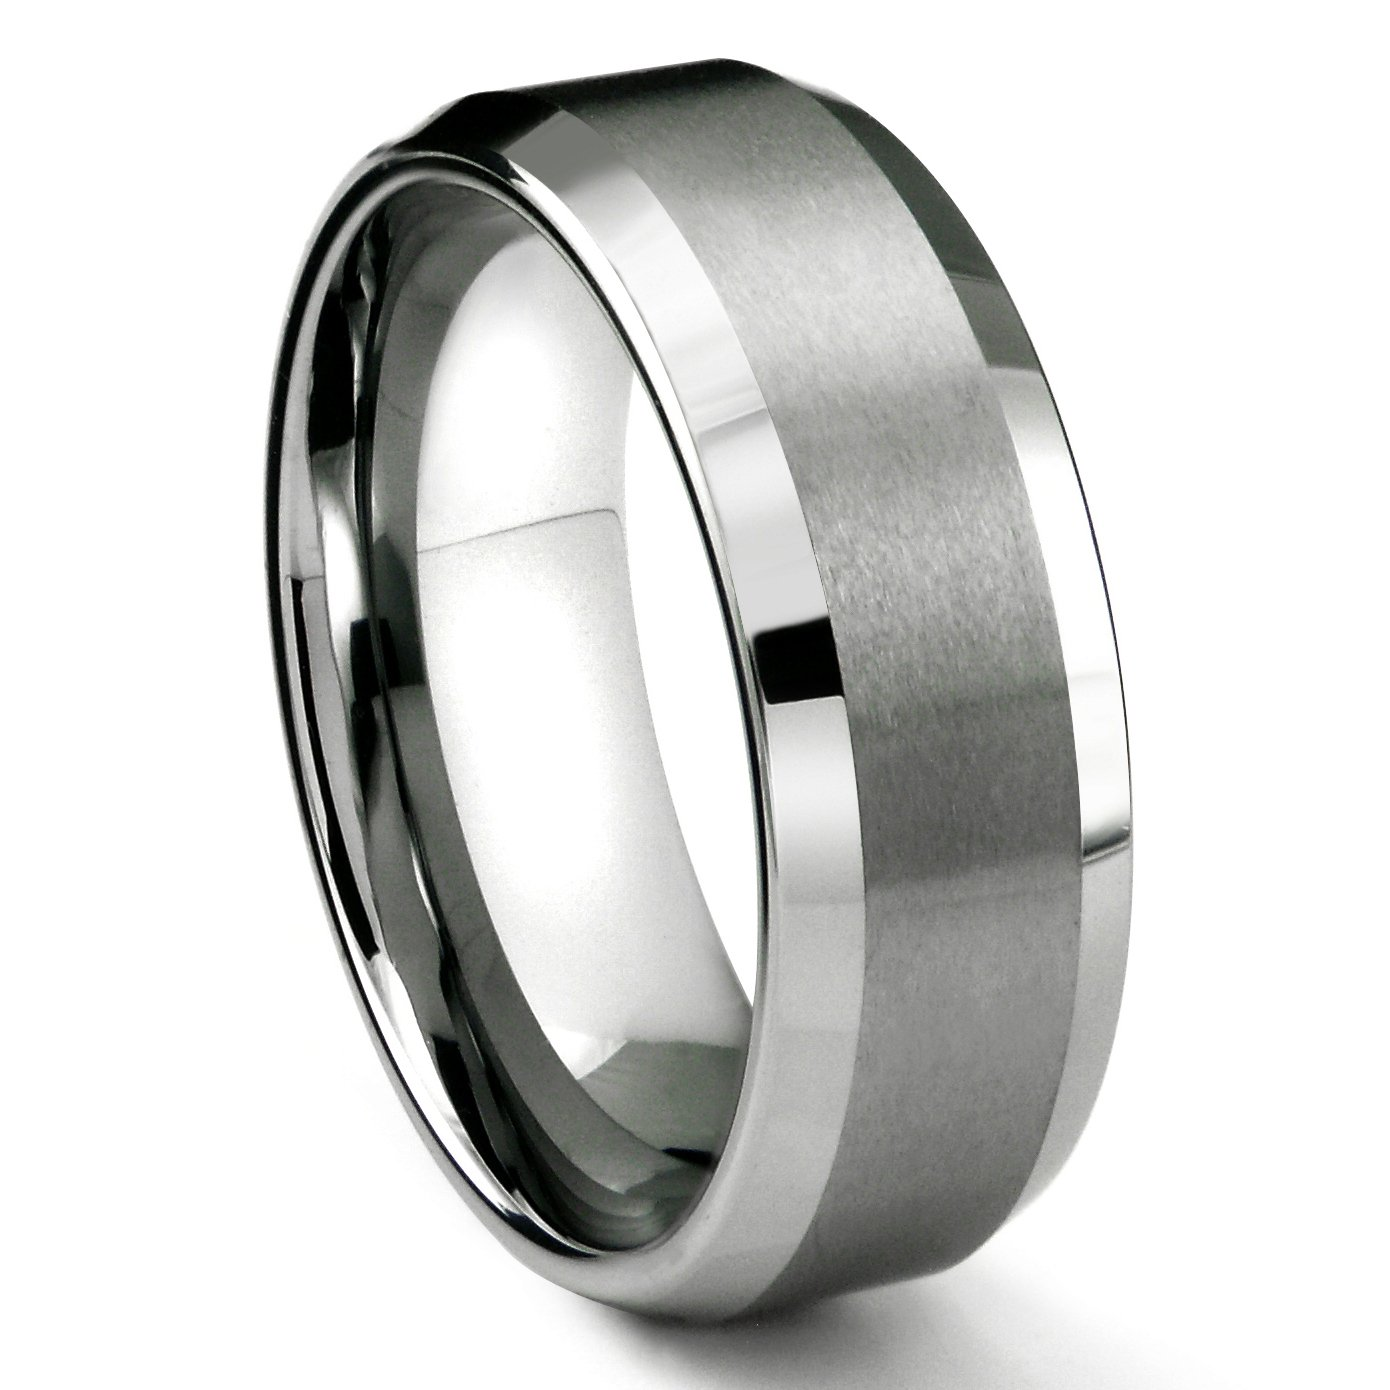 8MM Tungsten Metal Men's Wedding Band Ring in Comfort Fit and Matte Finish Sz 9.5